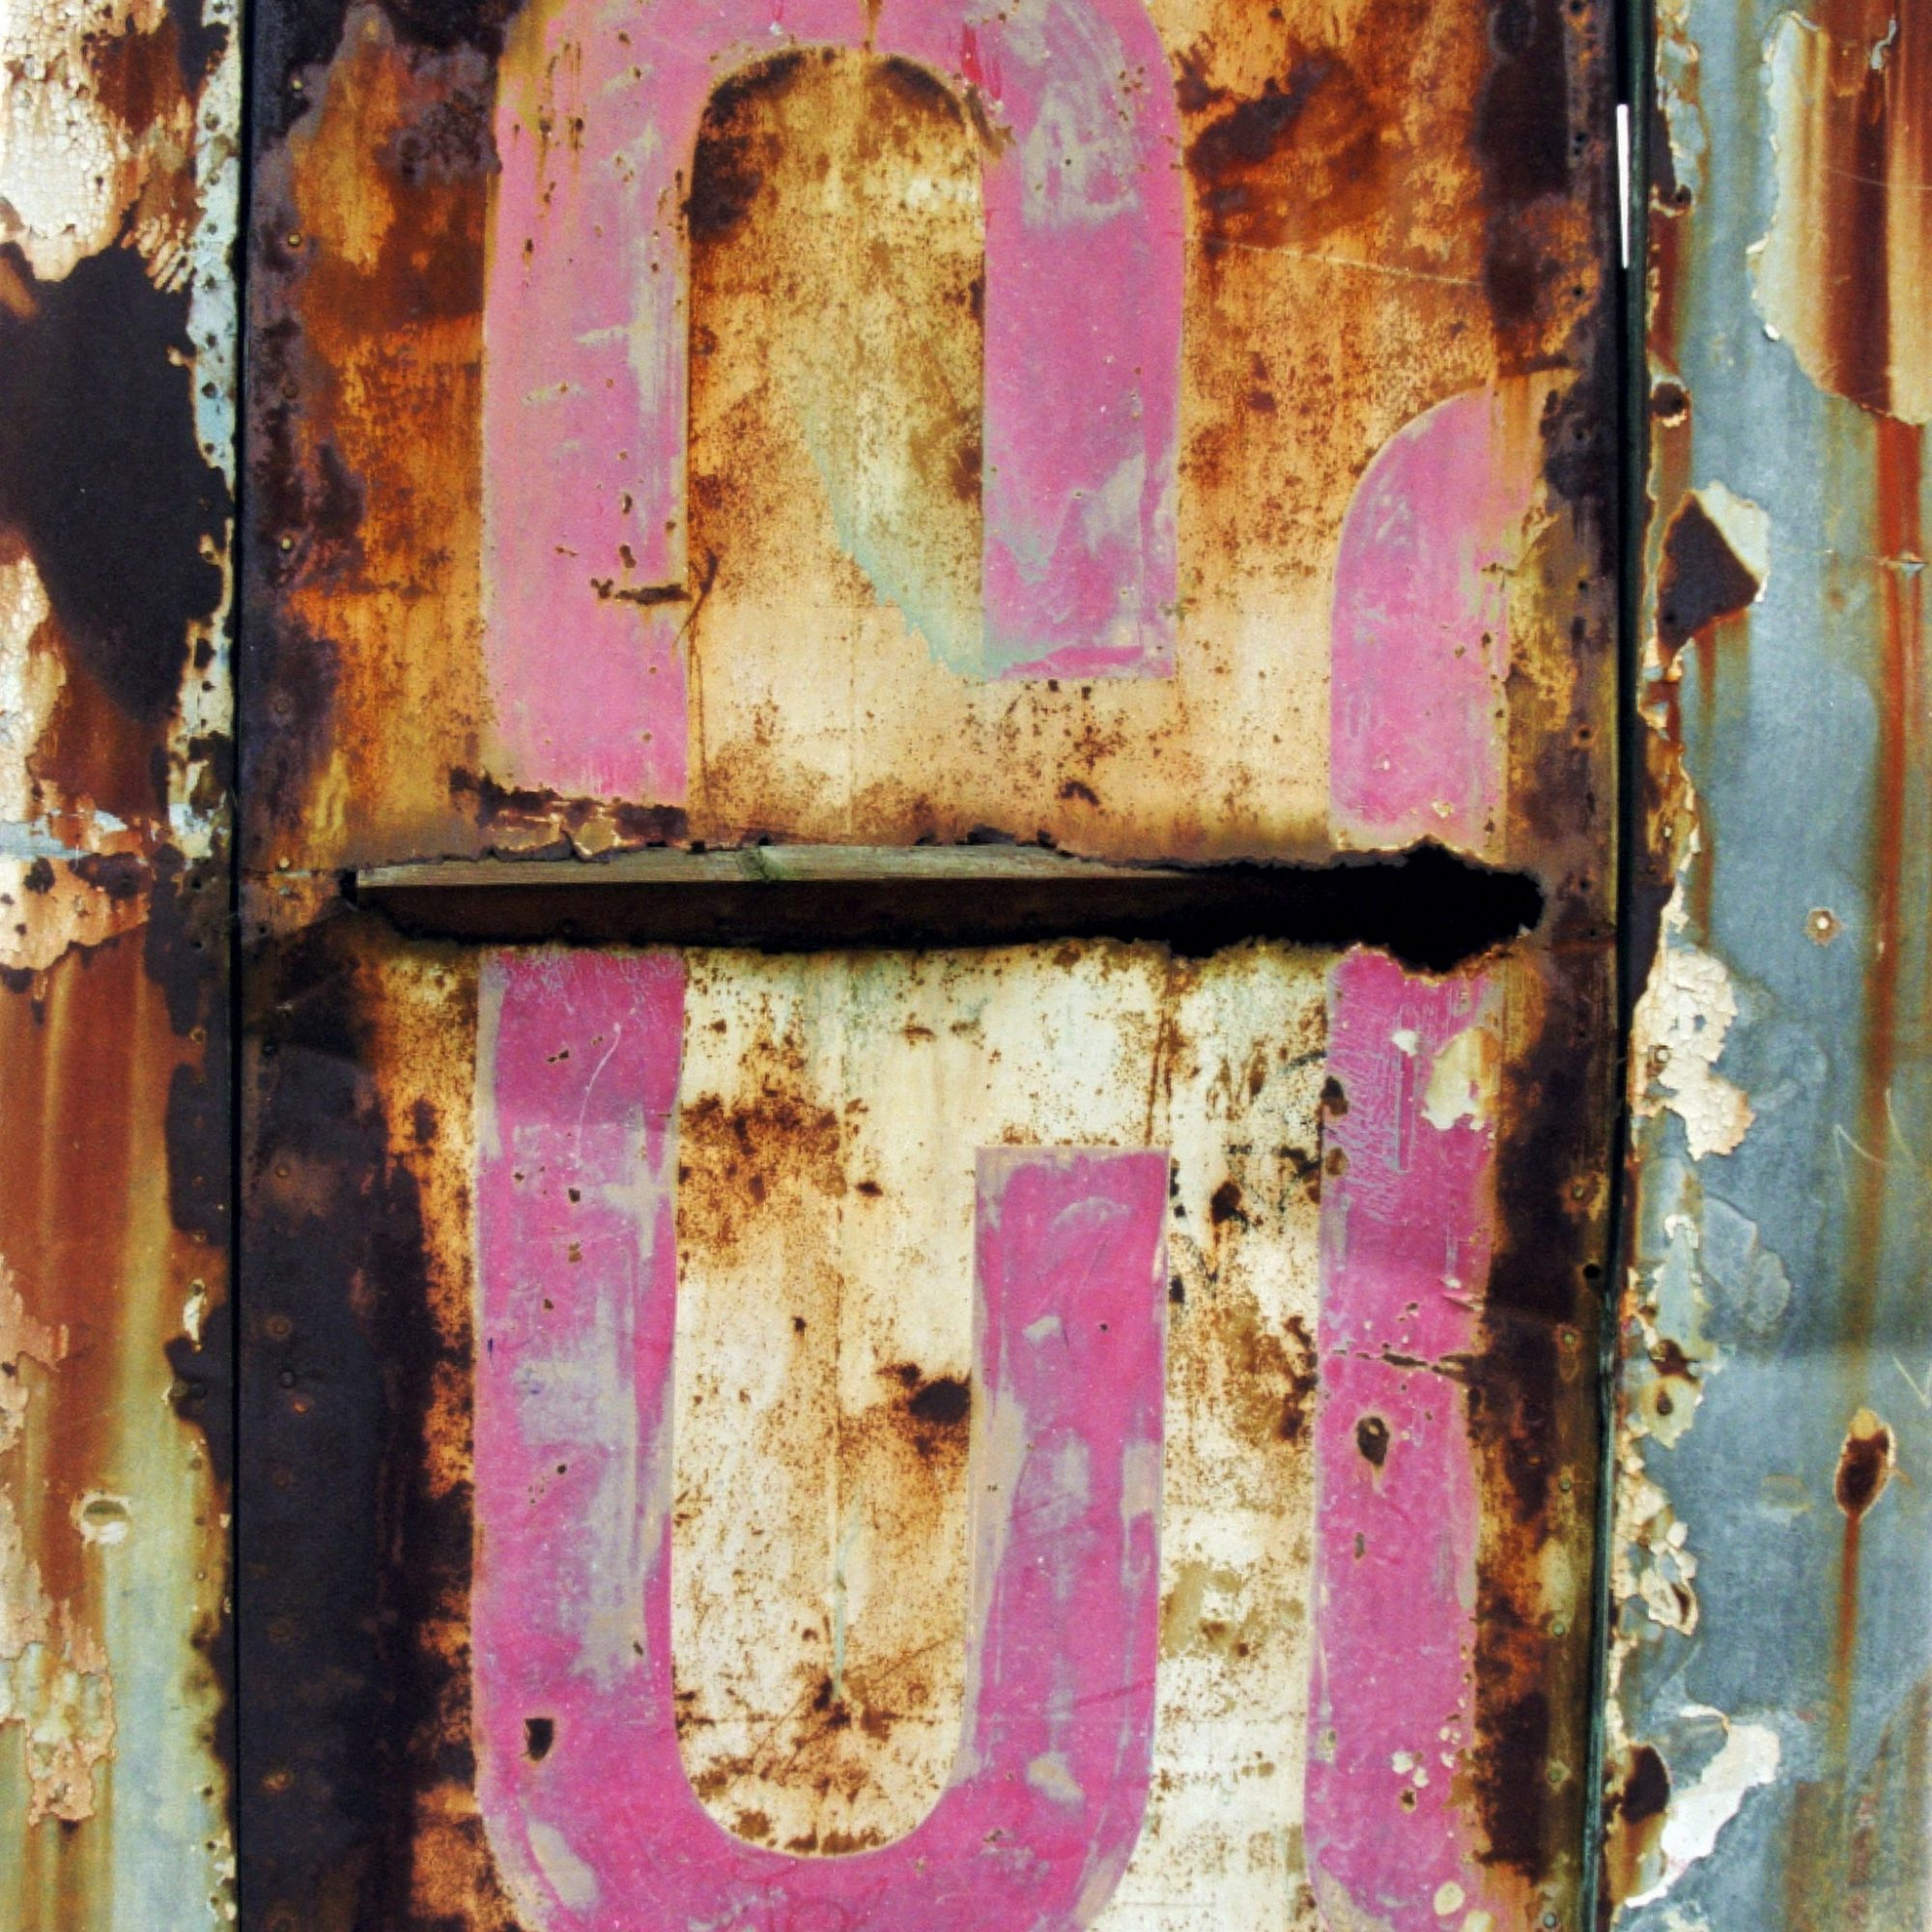 Captured detail of dilapidated vernacular typography